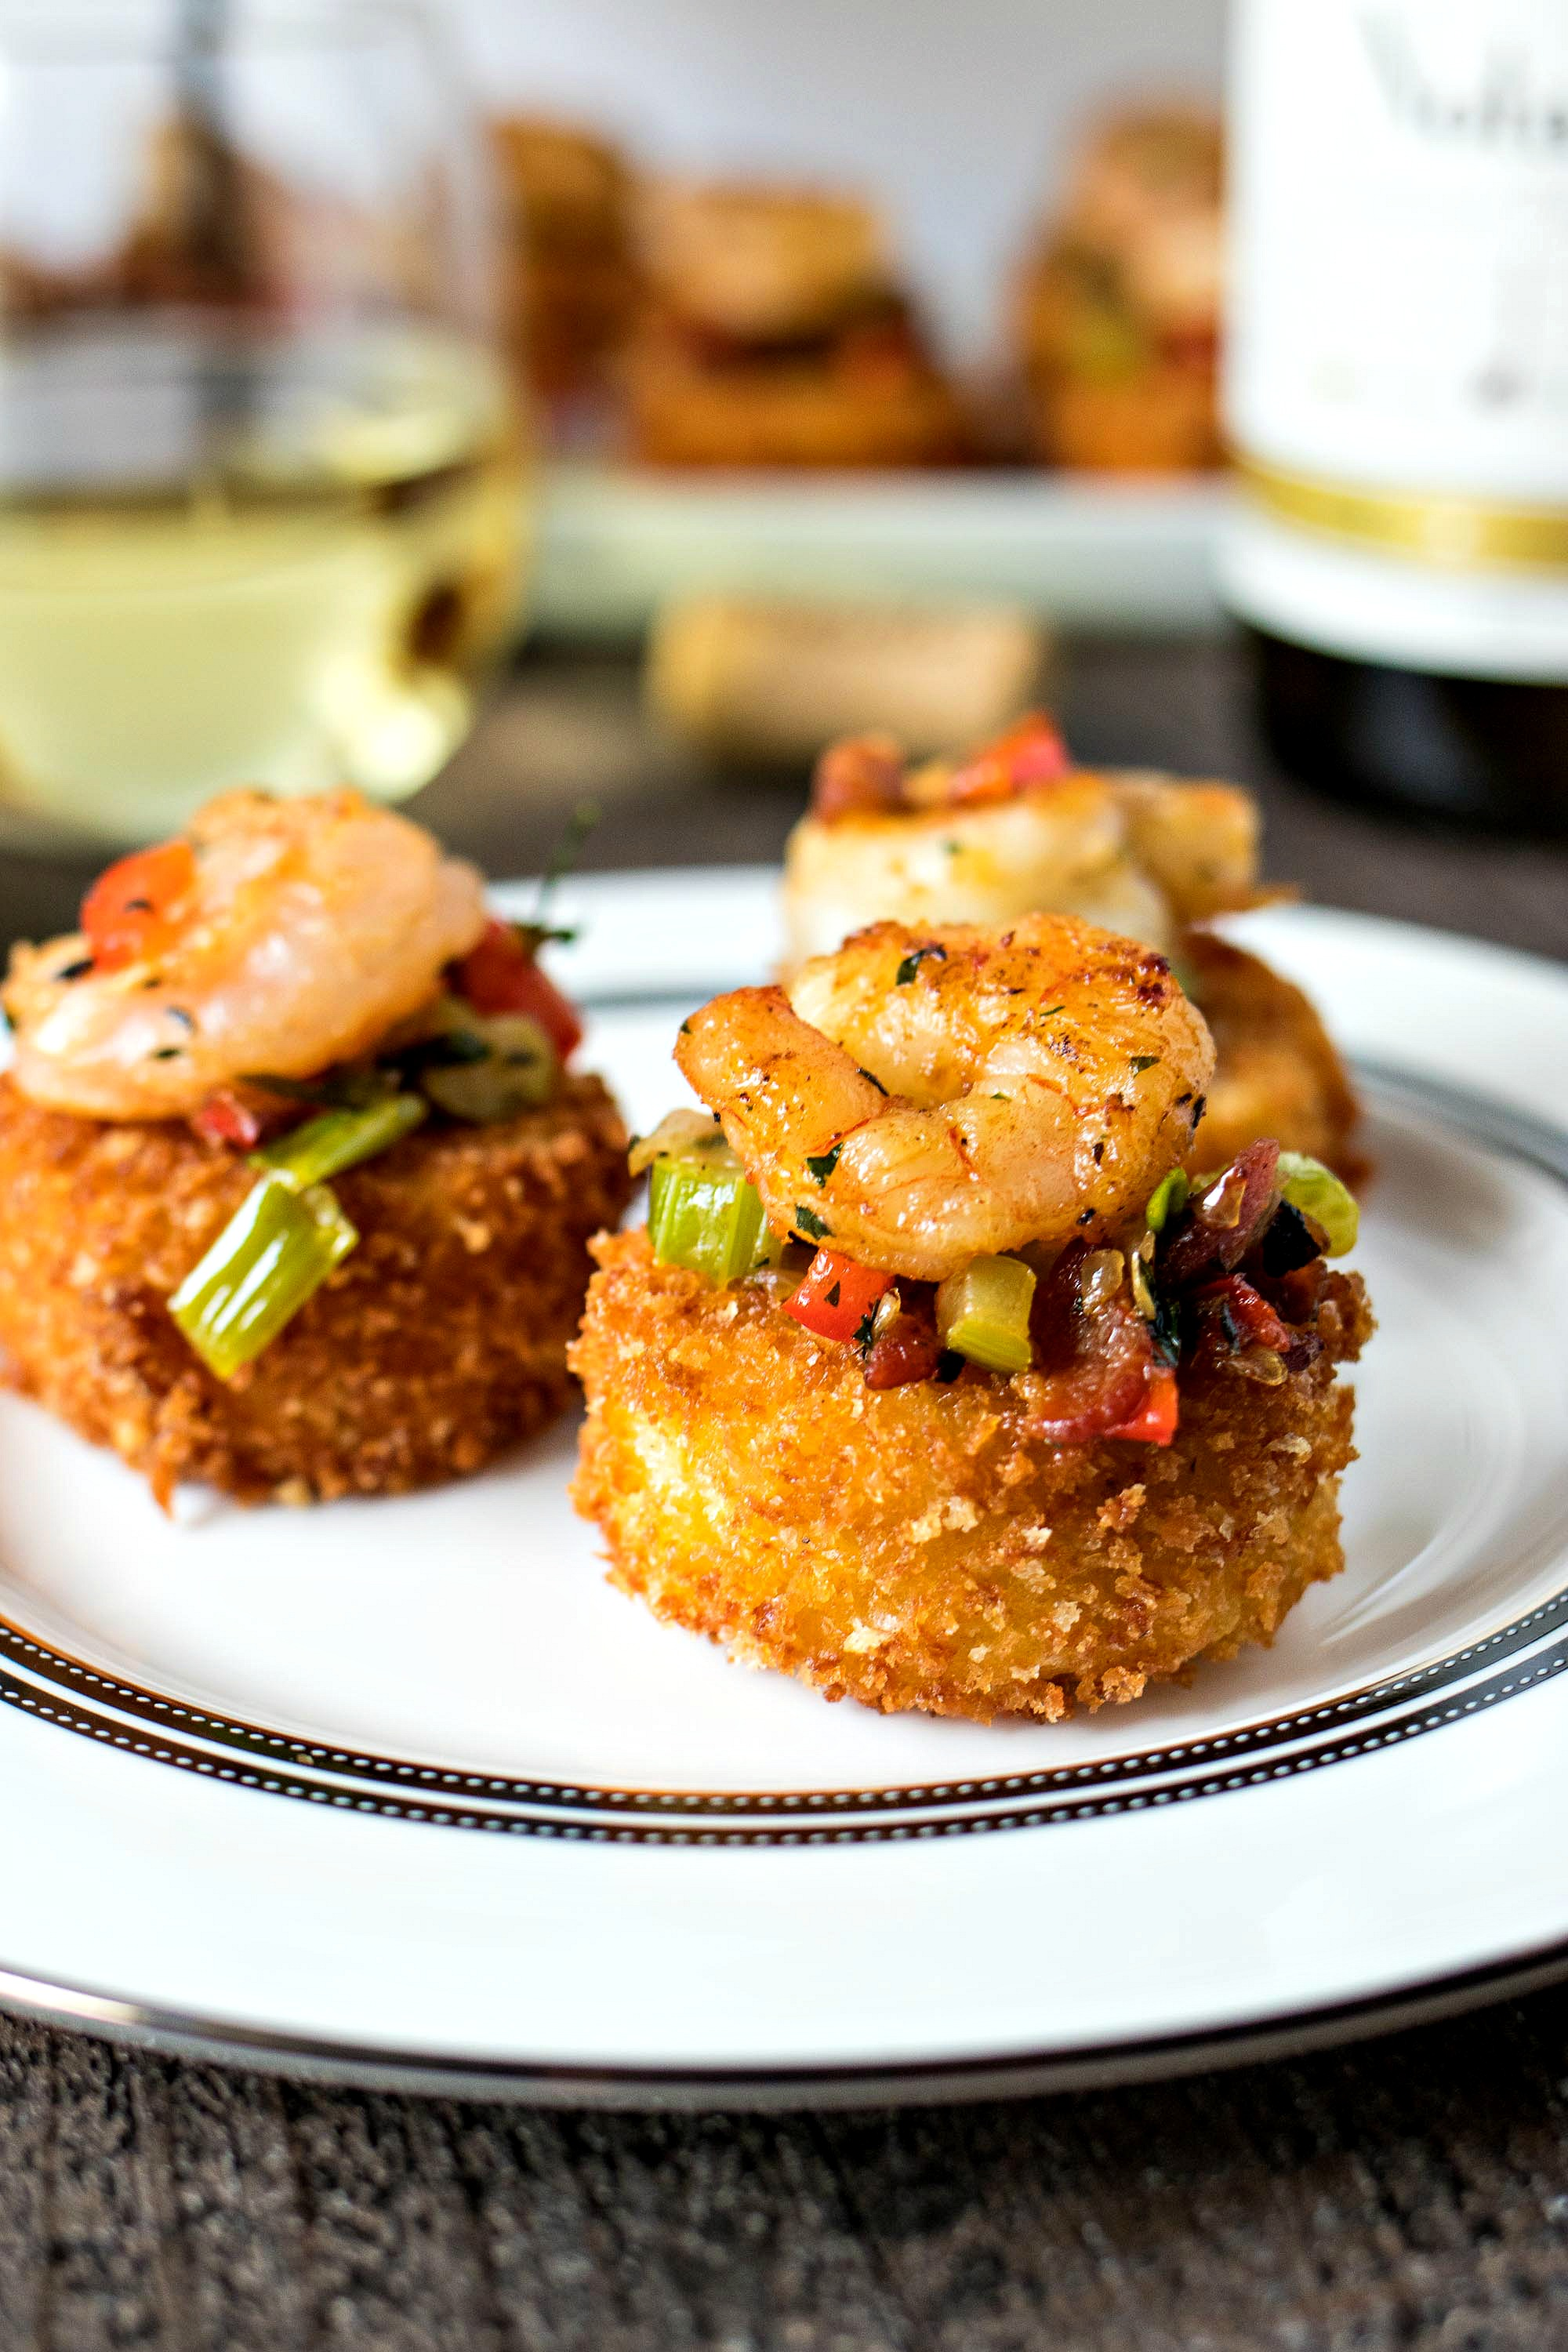 Shrimp & Cheesy Grit Cake Bites - Ultra creamy grit patties are fried and served with a buttery sauteed shrimp and crispy bacon to create an appetizer that your guests will go crazy for. Pairs perfectly with the flavors of Chardonnay wine!